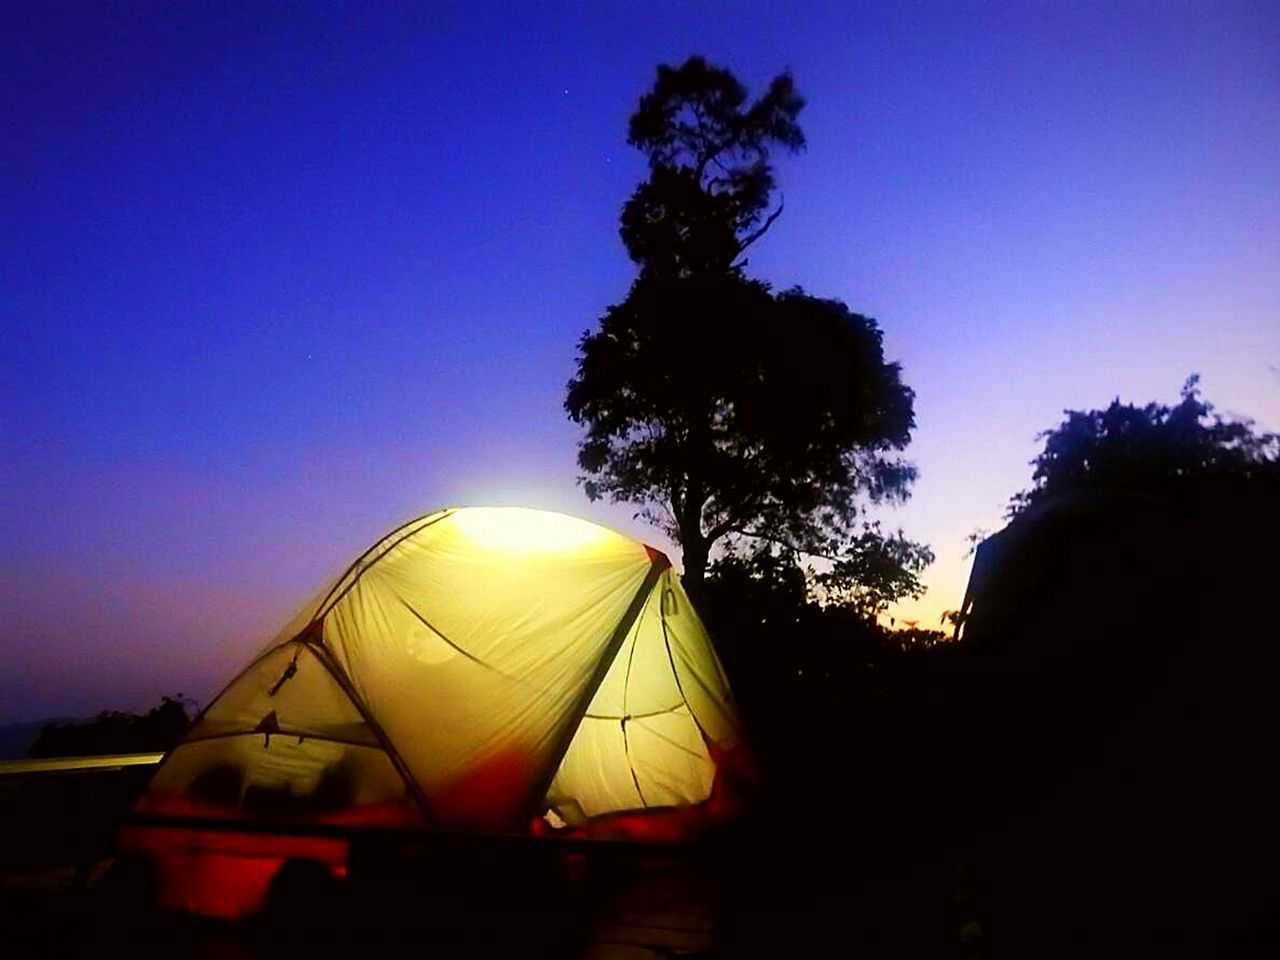 sky, tree, plant, silhouette, sunset, tent, nature, transportation, mode of transportation, clear sky, no people, sunlight, camping, blue, outdoors, growth, copy space, scenics - nature, sun, beauty in nature